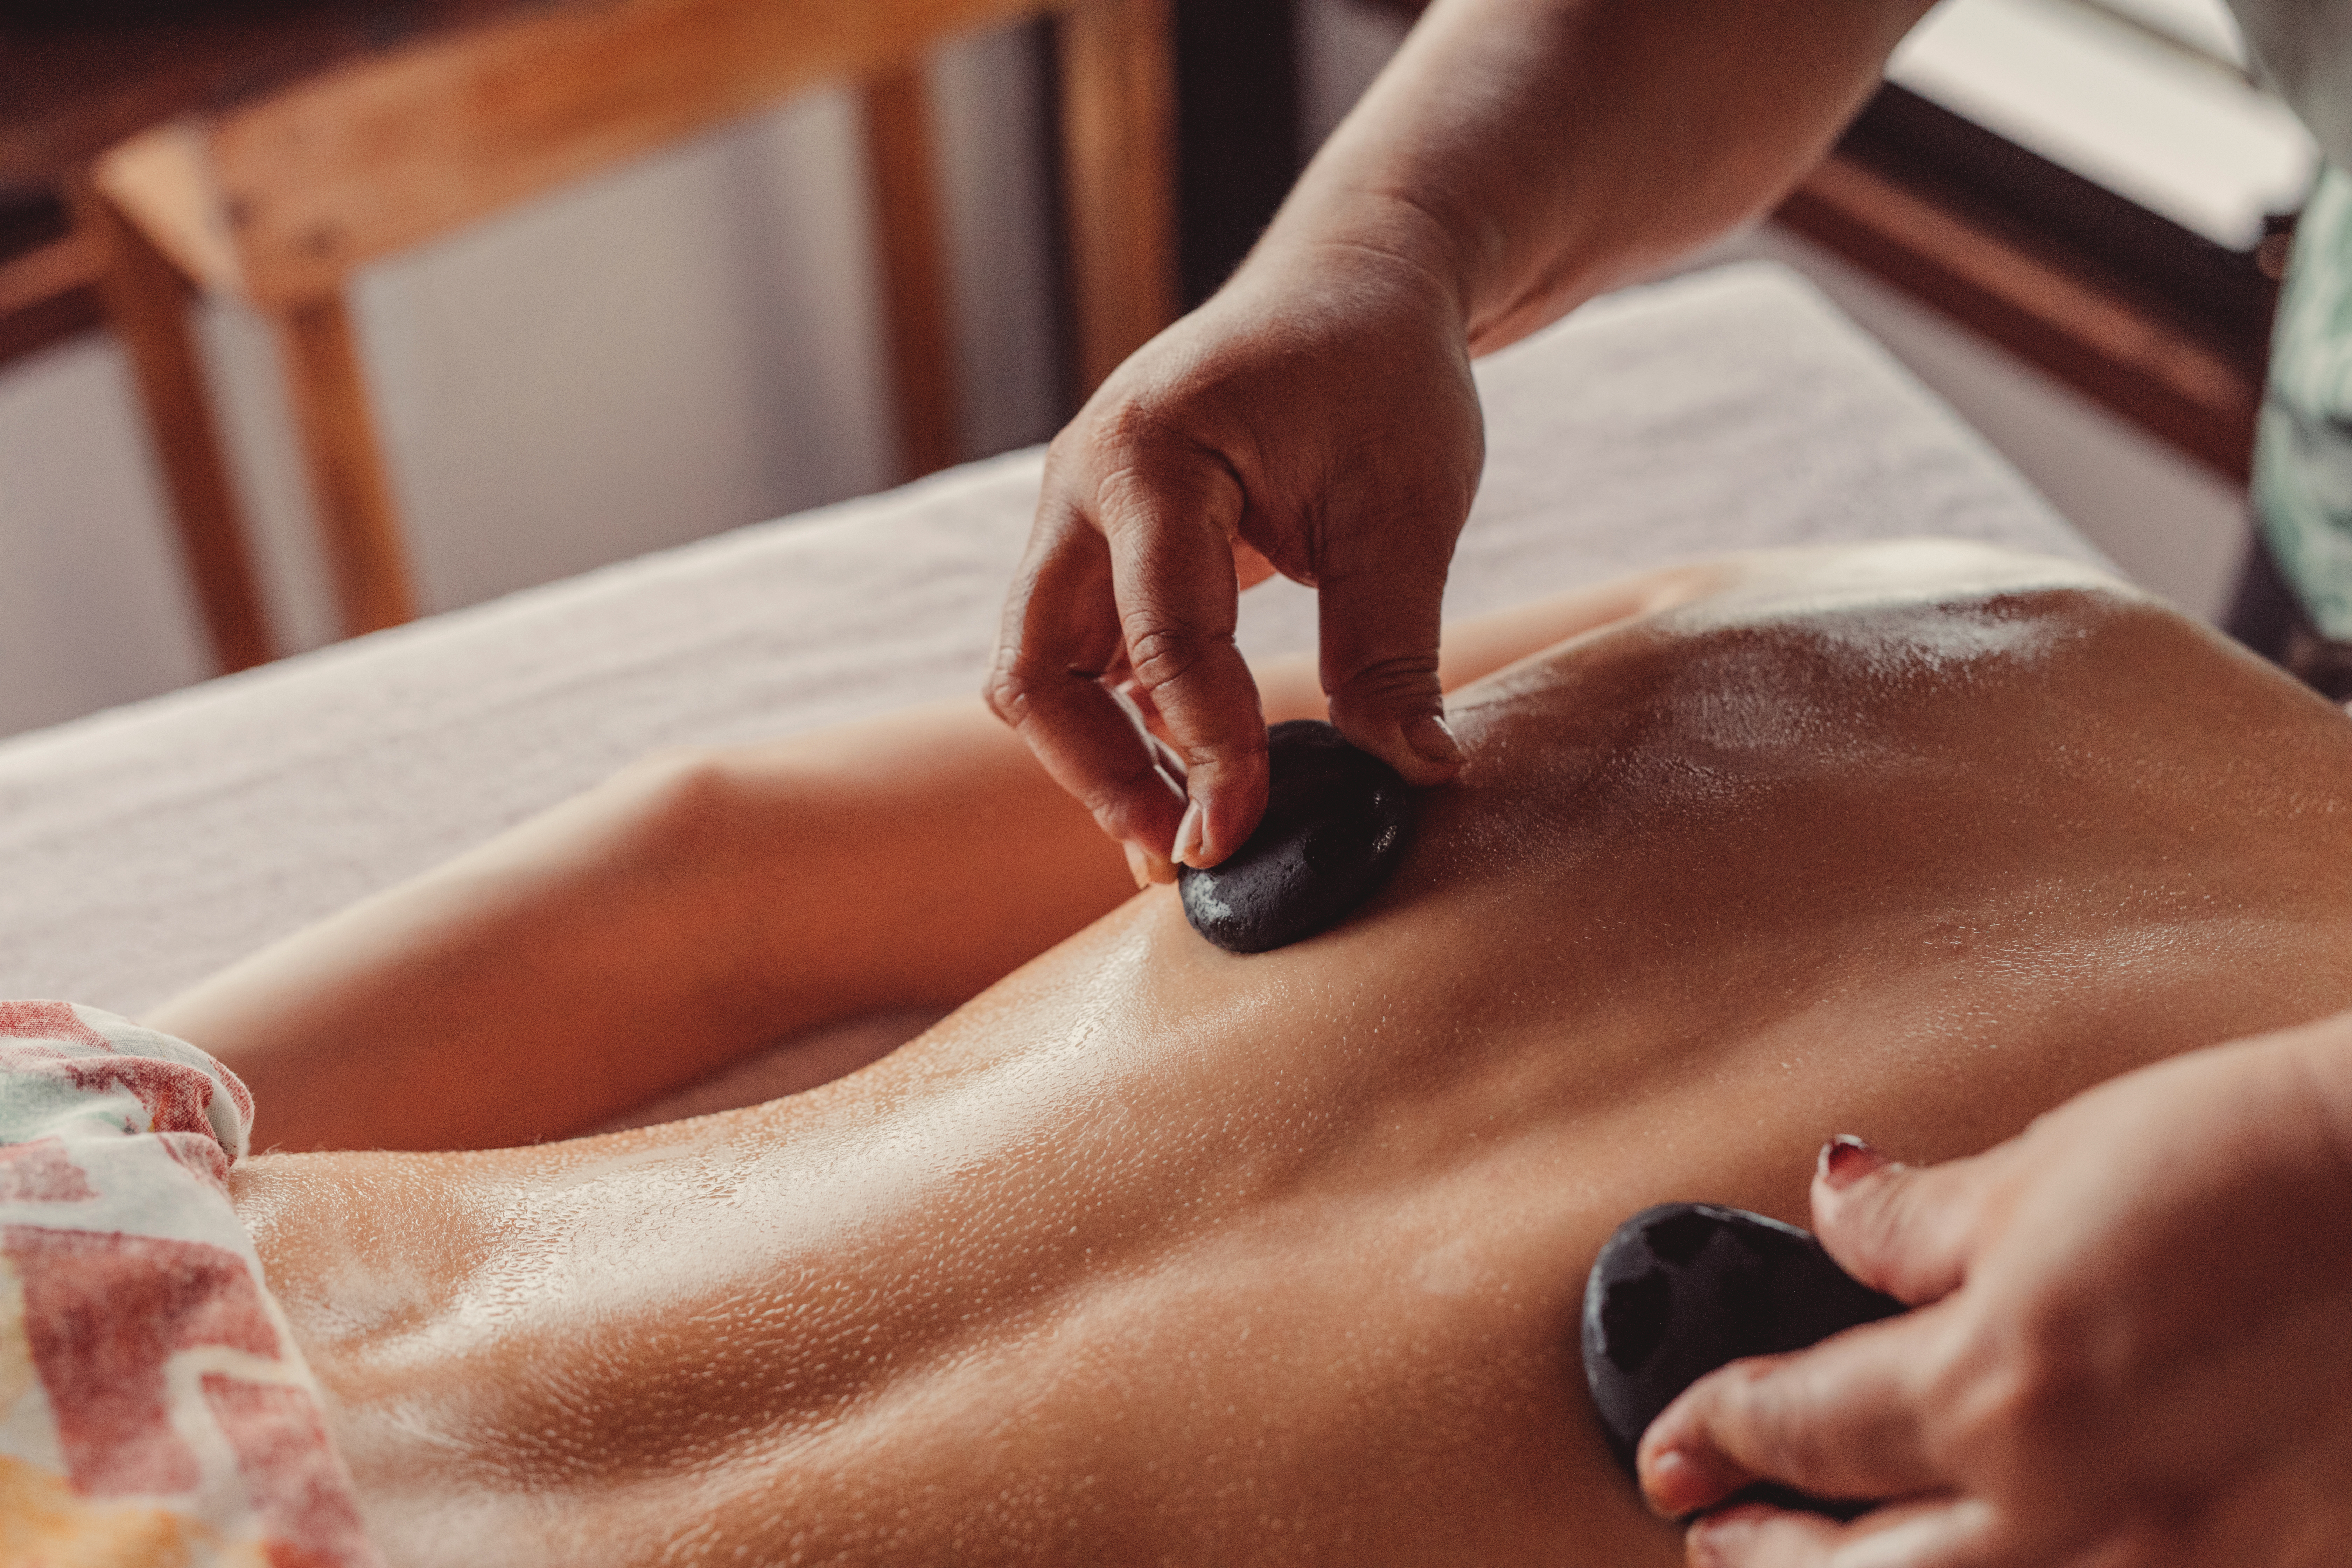 TIER 4: T1, T2 & T3 + FREE MASSAGE FOR 2